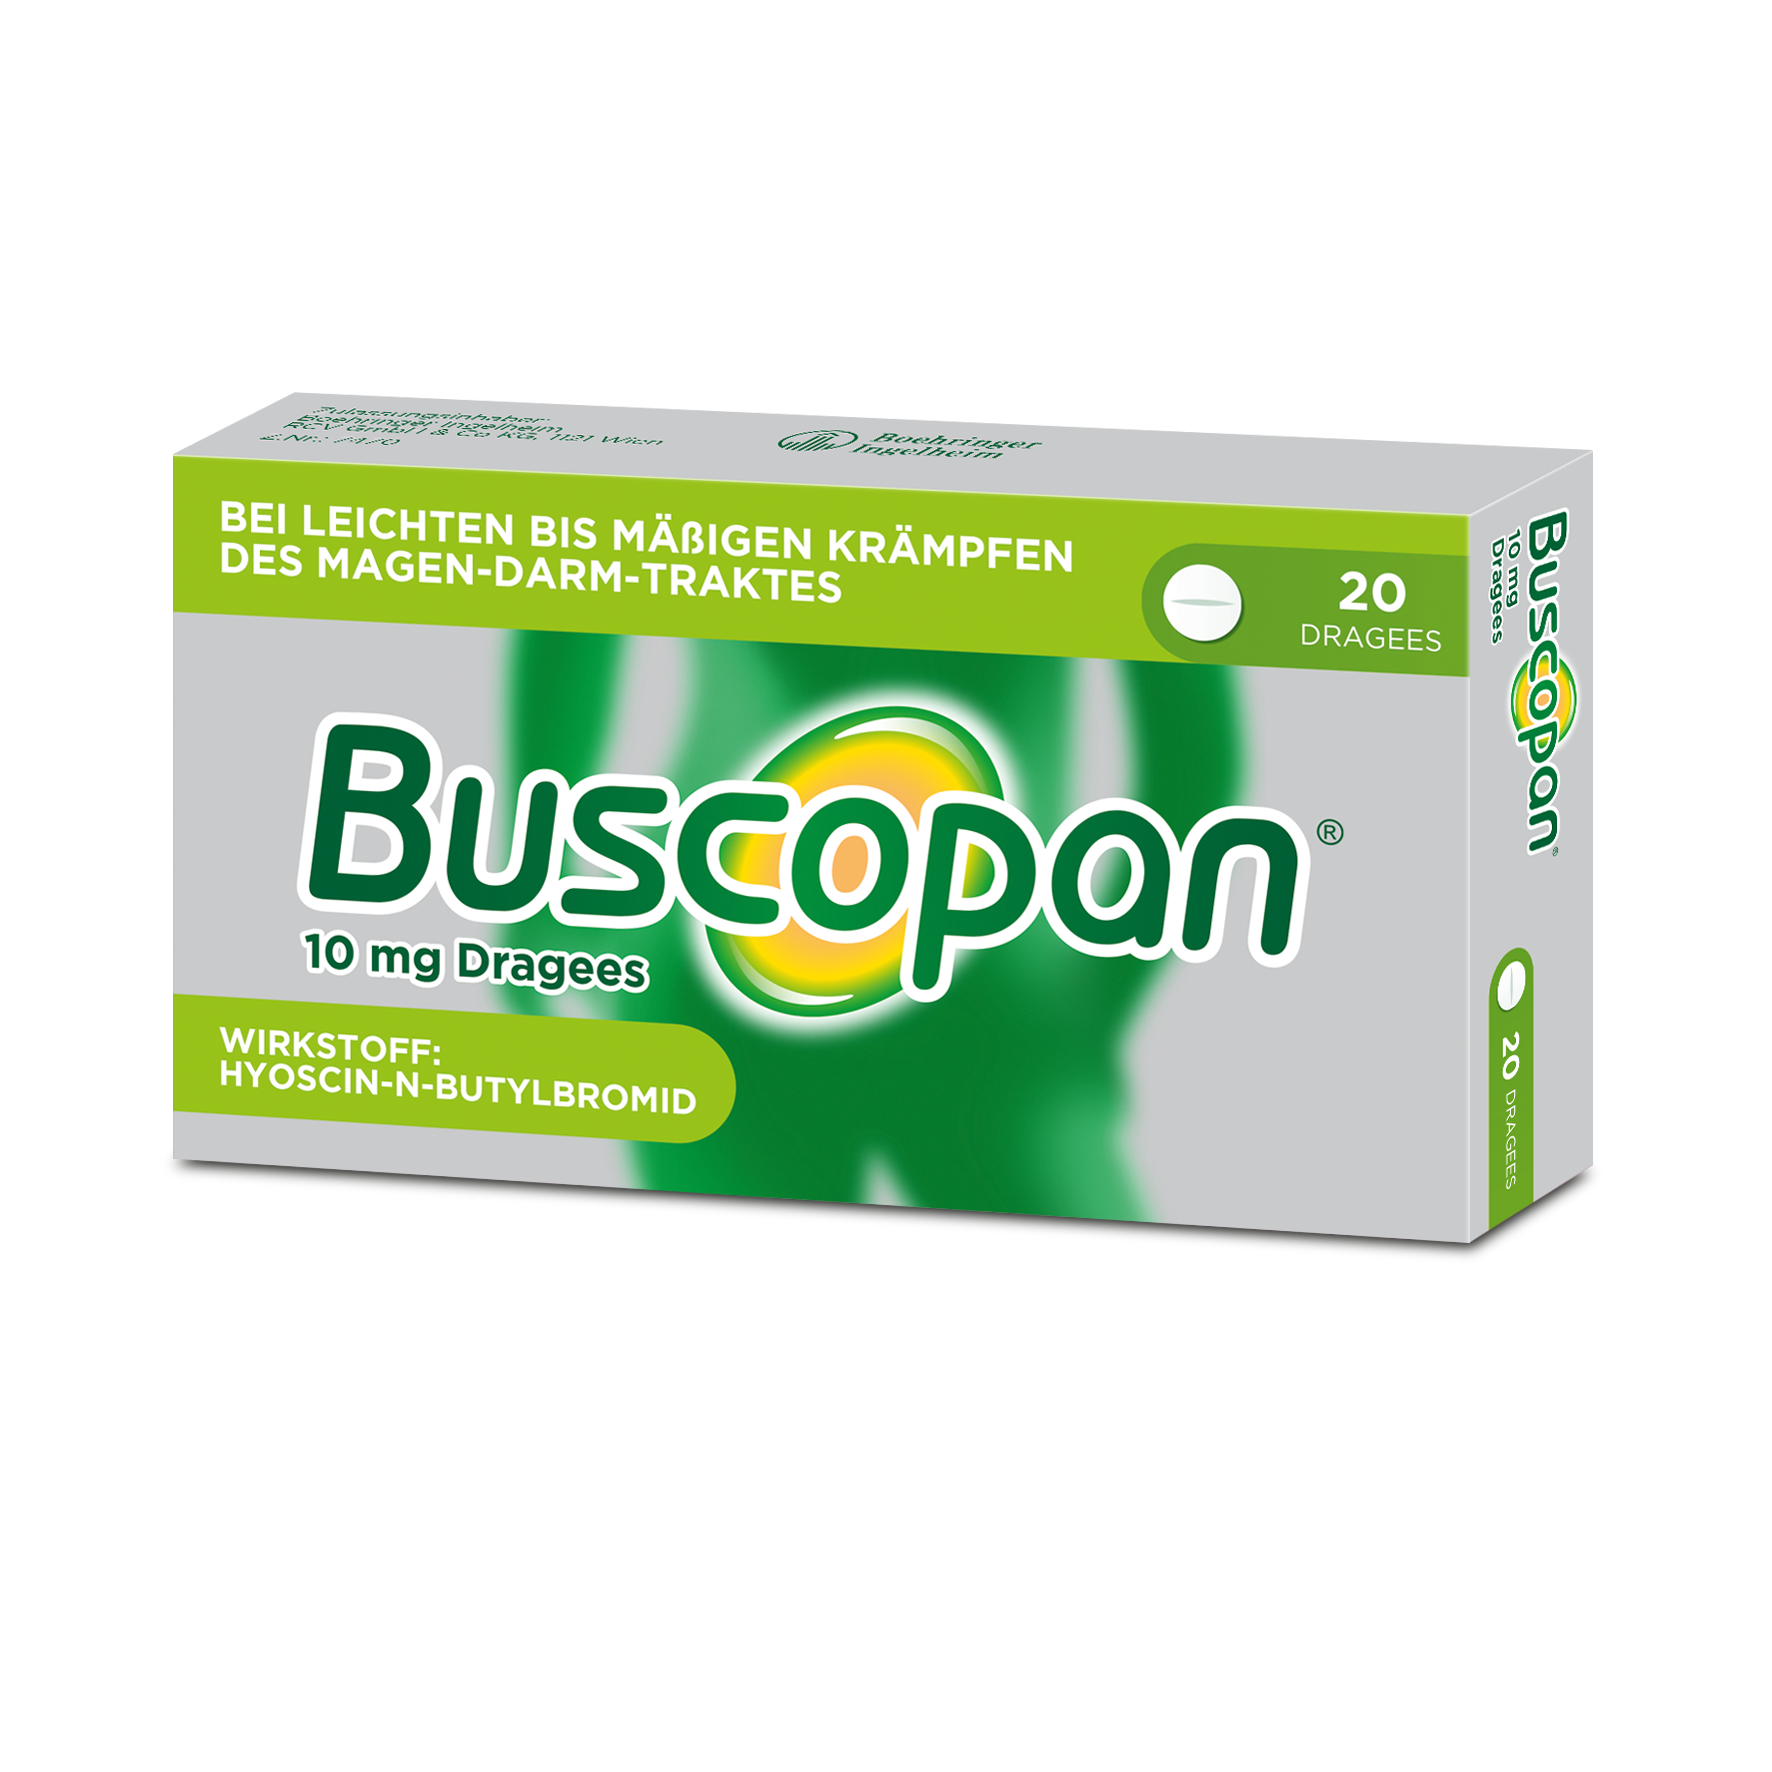 Buscopan 10 mg - Dragees